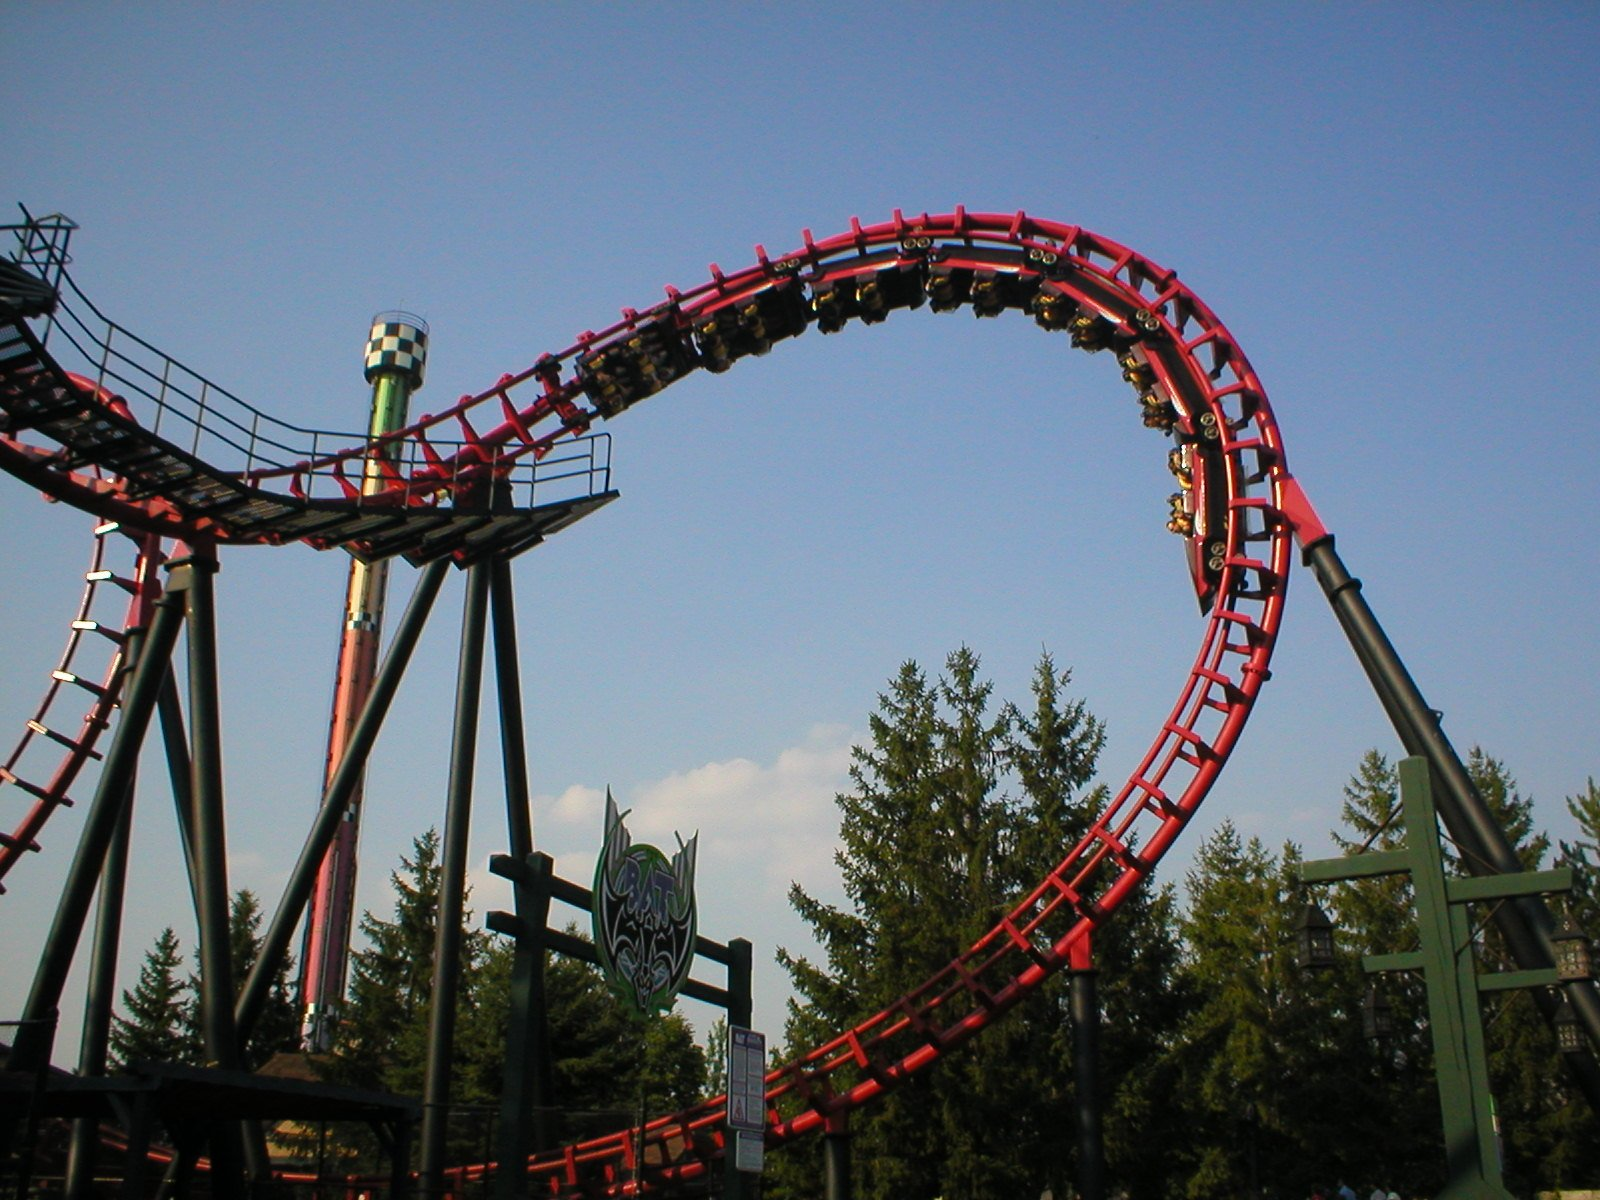 File:The Bat at Canada's Wonderland.jpg - Wikipedia